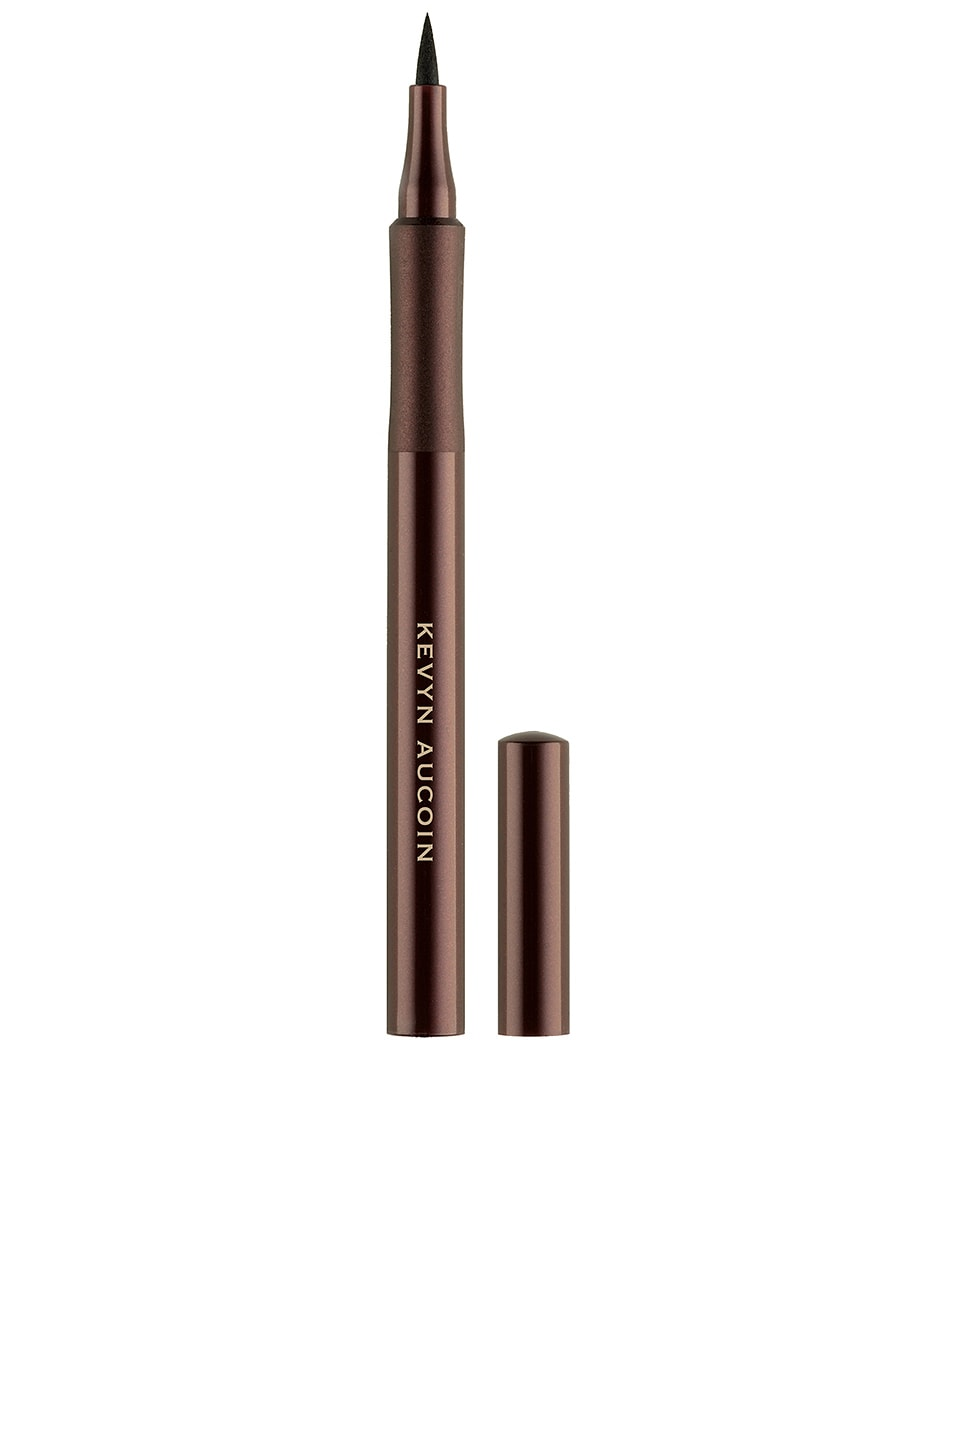 Kevyn Aucoin The Precision Liquid Liner in Basic Black